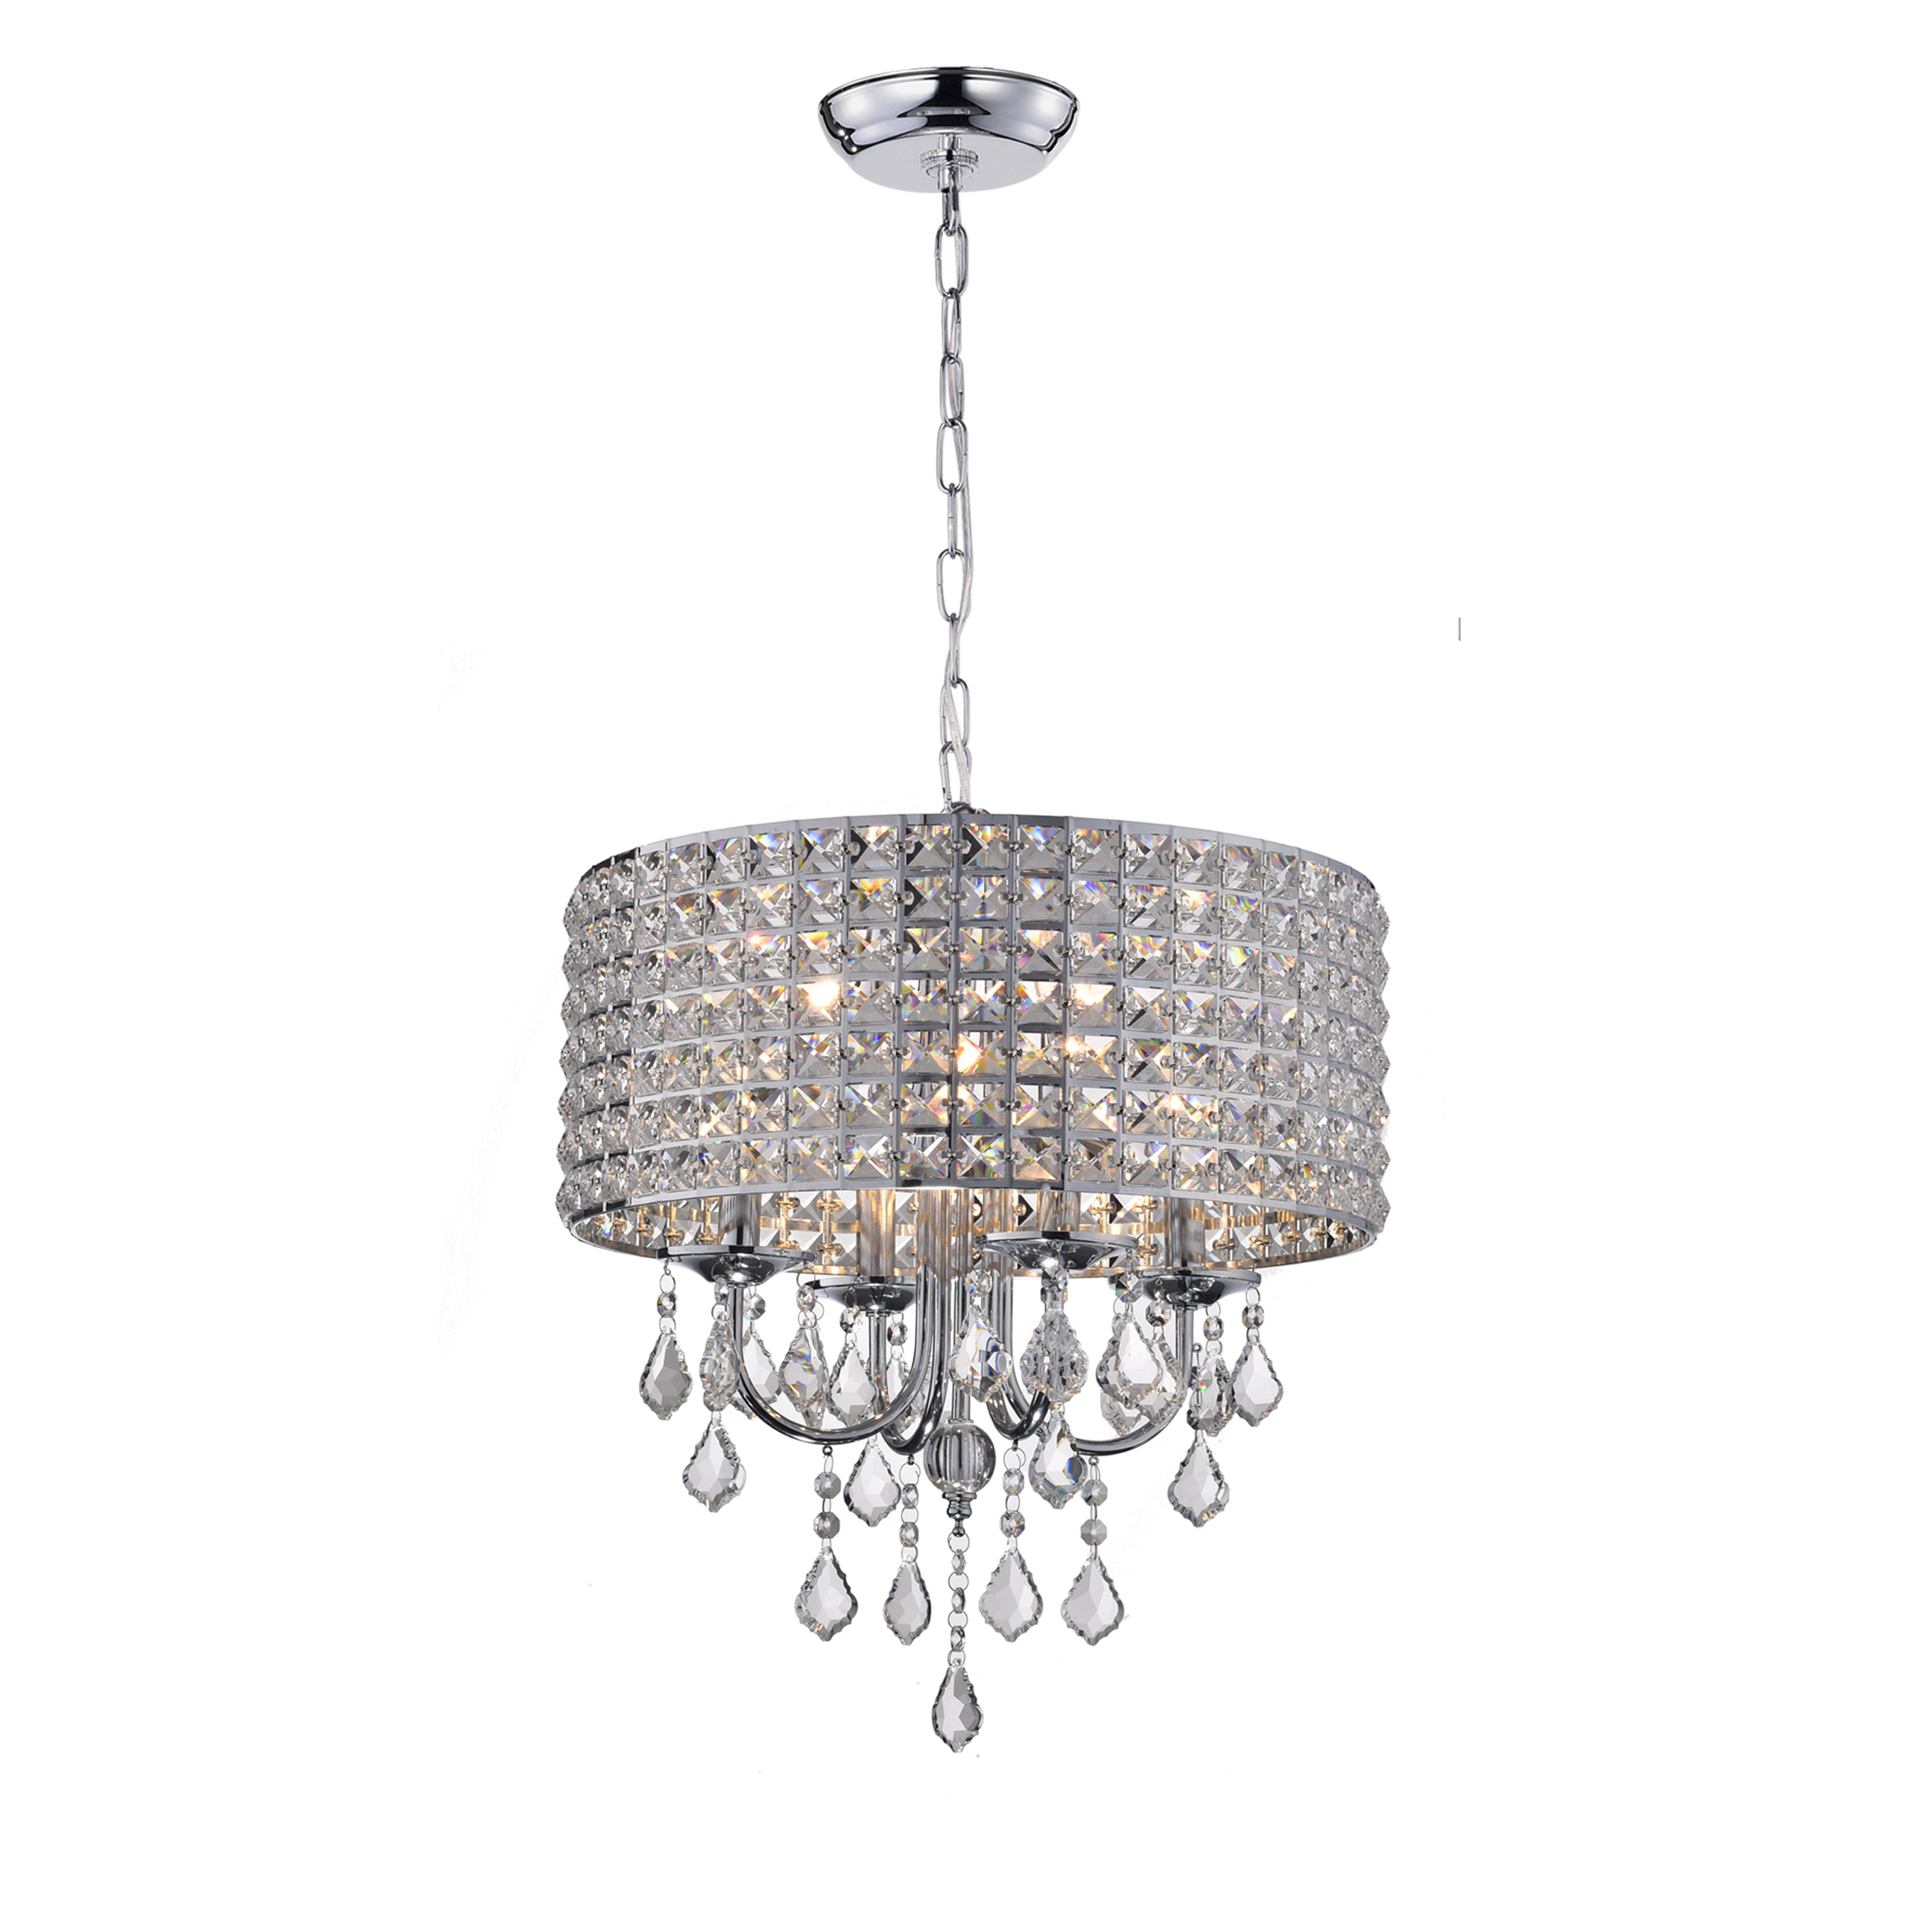 Albano 4 Light Crystal Chandelier Within Benedetto 5 Light Crystal Chandeliers (View 5 of 30)